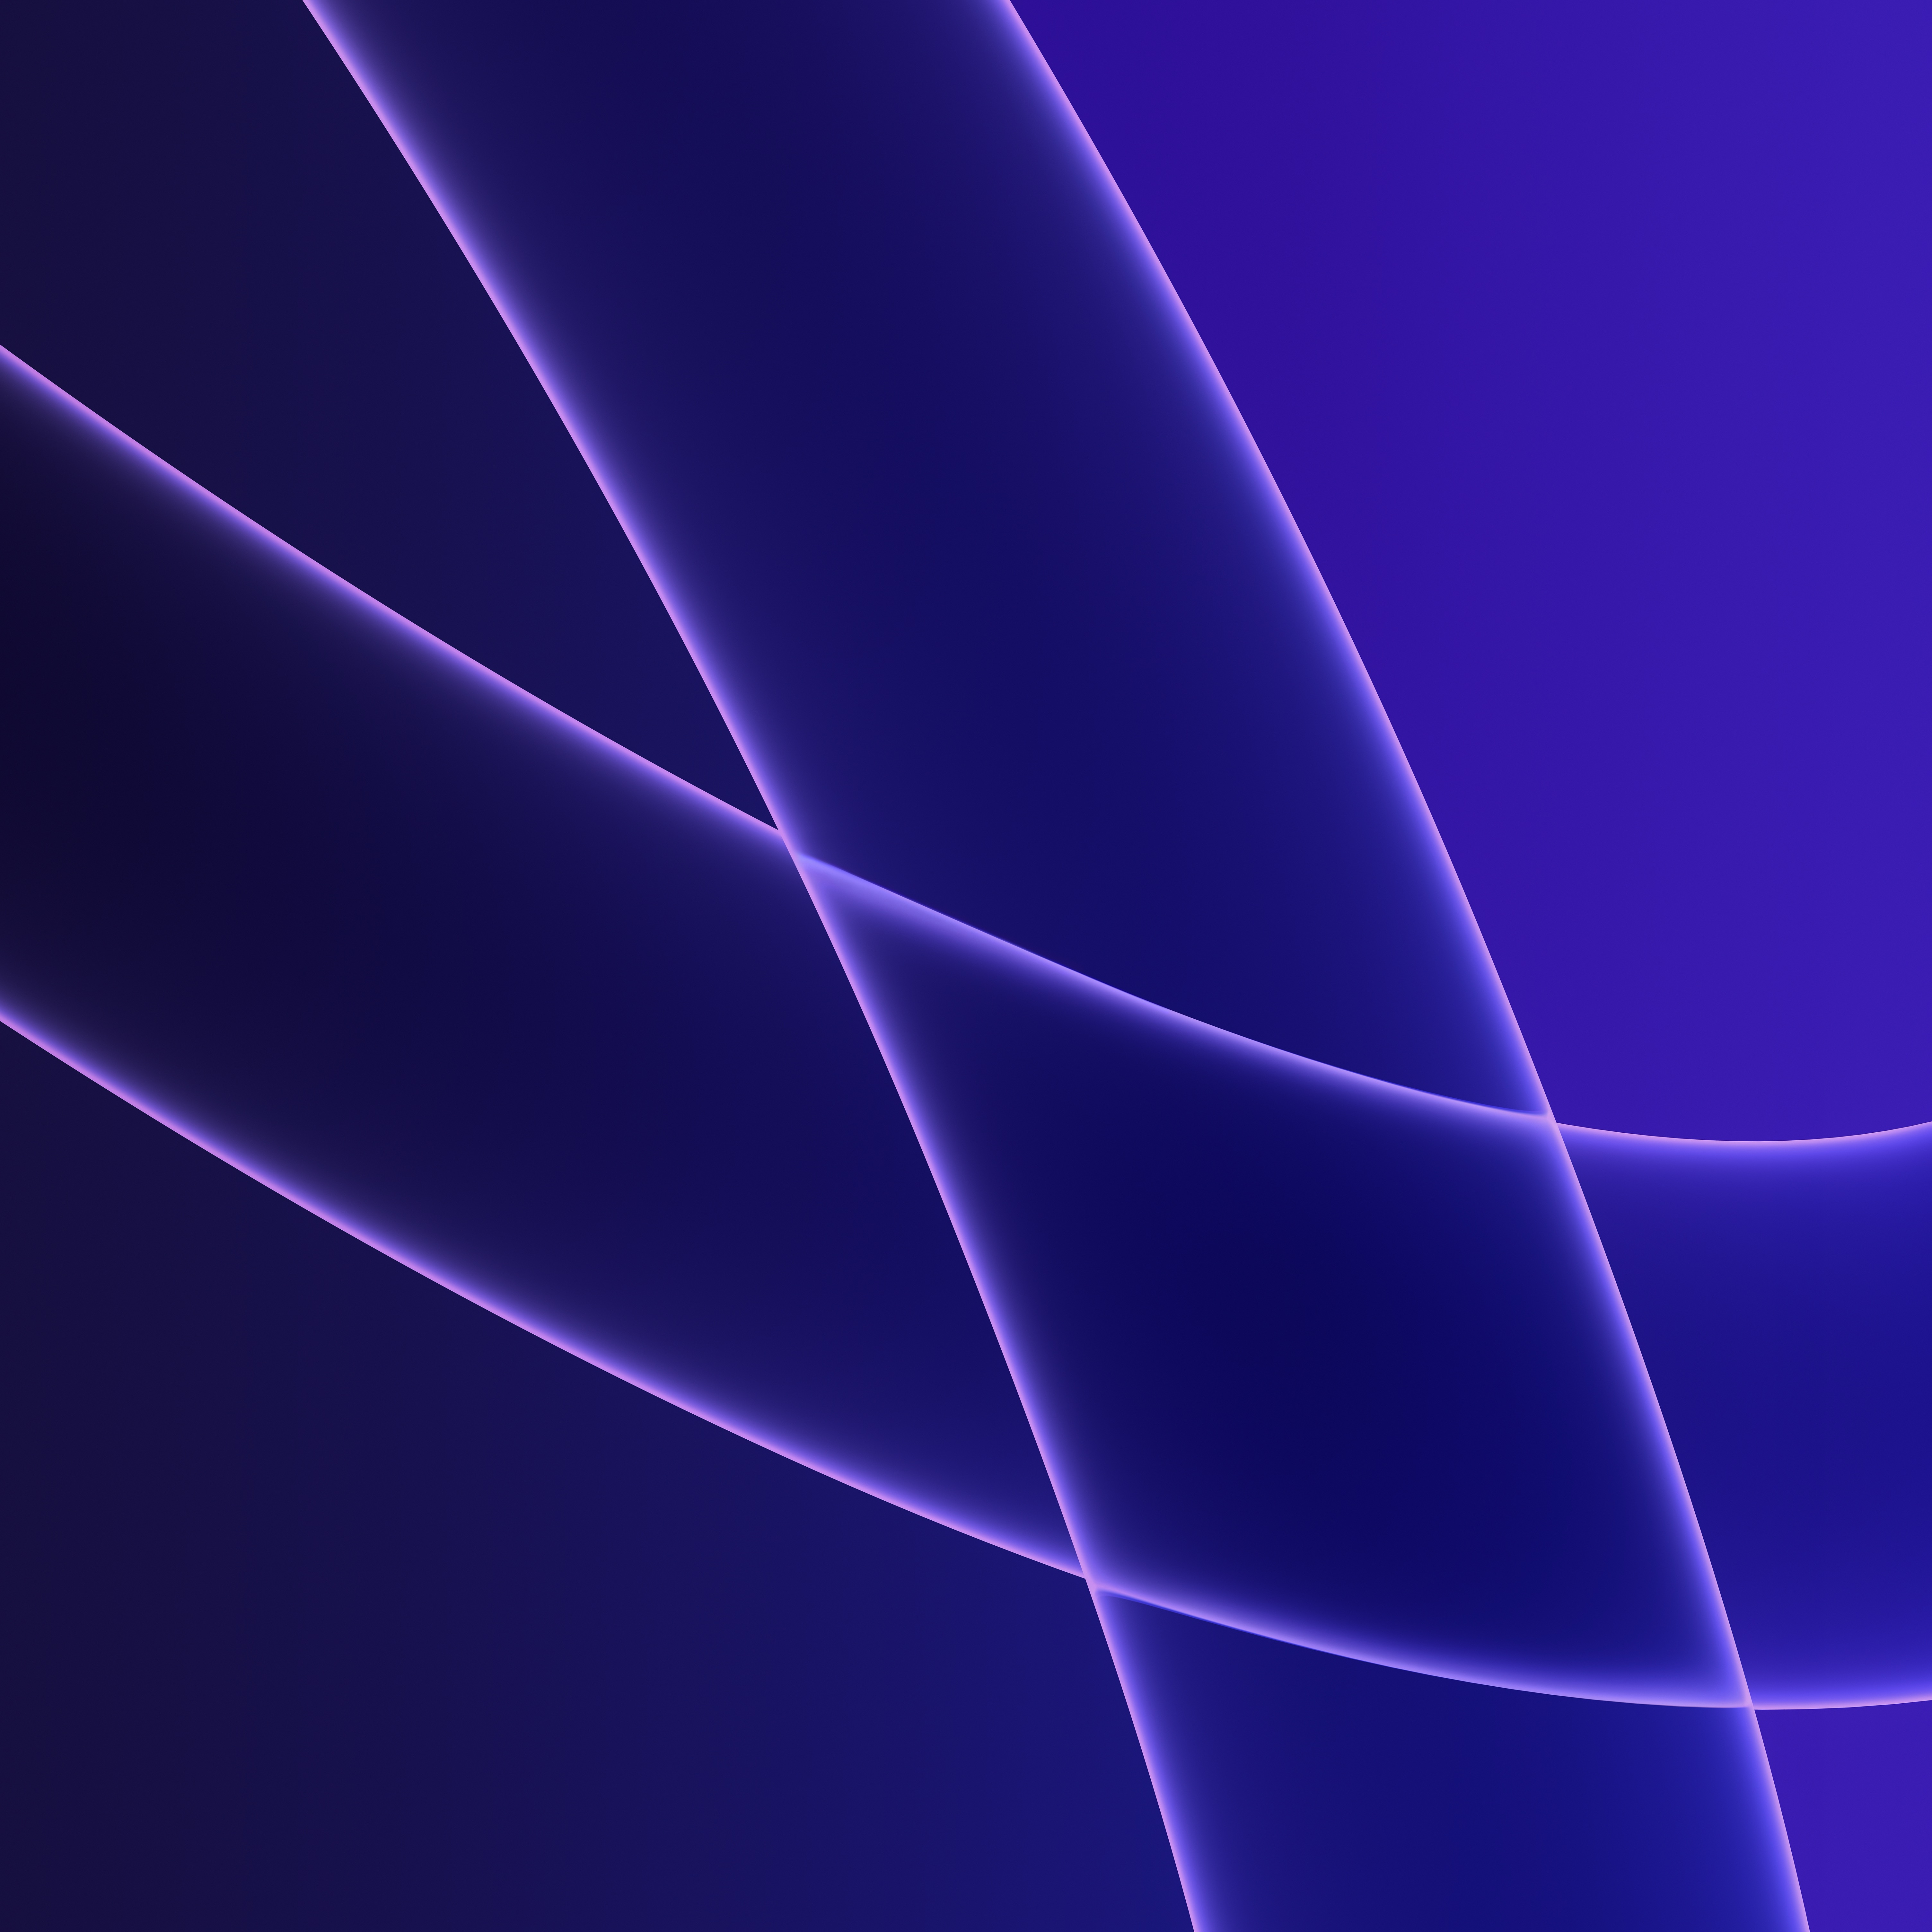 iMac 2021 Wallpaper dark purple